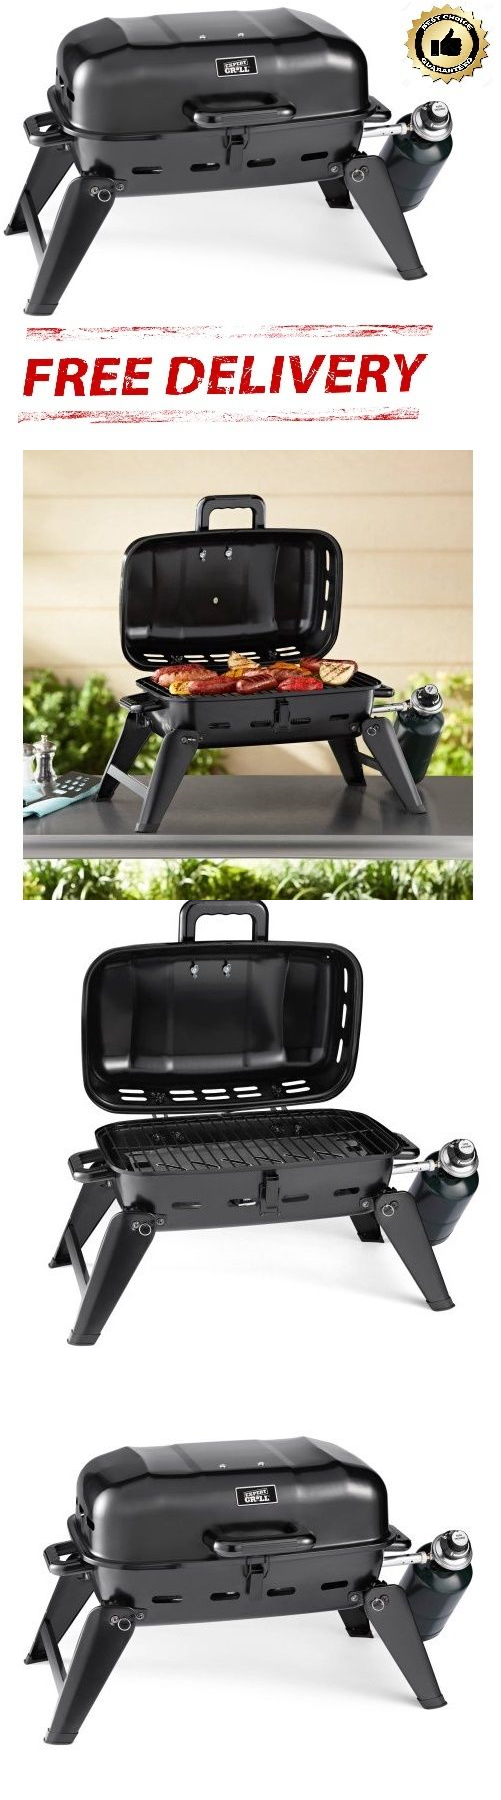 Affordable Camping Bbqs And Grills Expert Grill Tabletop Gas Outdoor Picnic Helper Cooker With Picknick